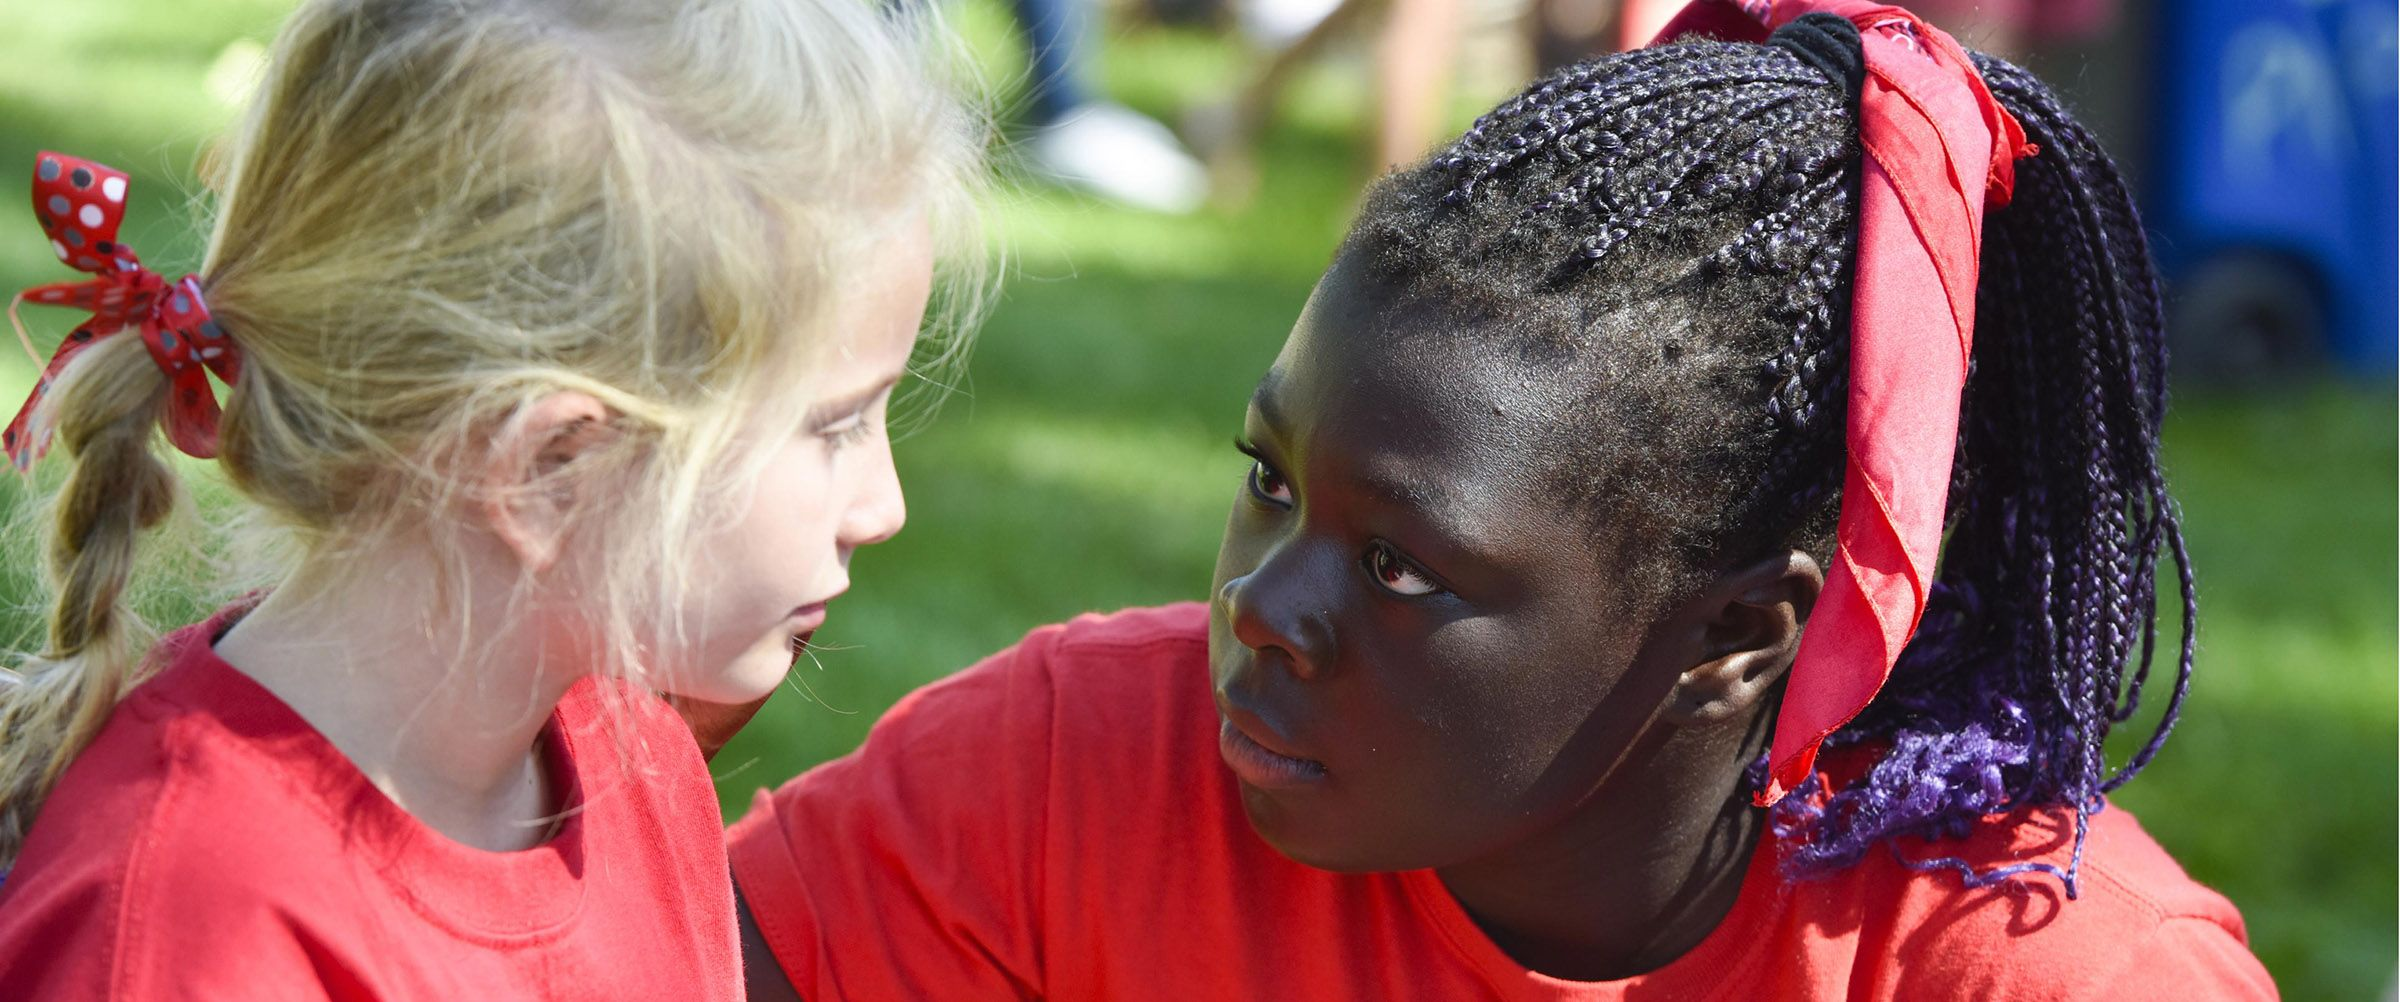 Face painting at an outdoor event at Colorado Academy, a top private PK-12 school in Denver.